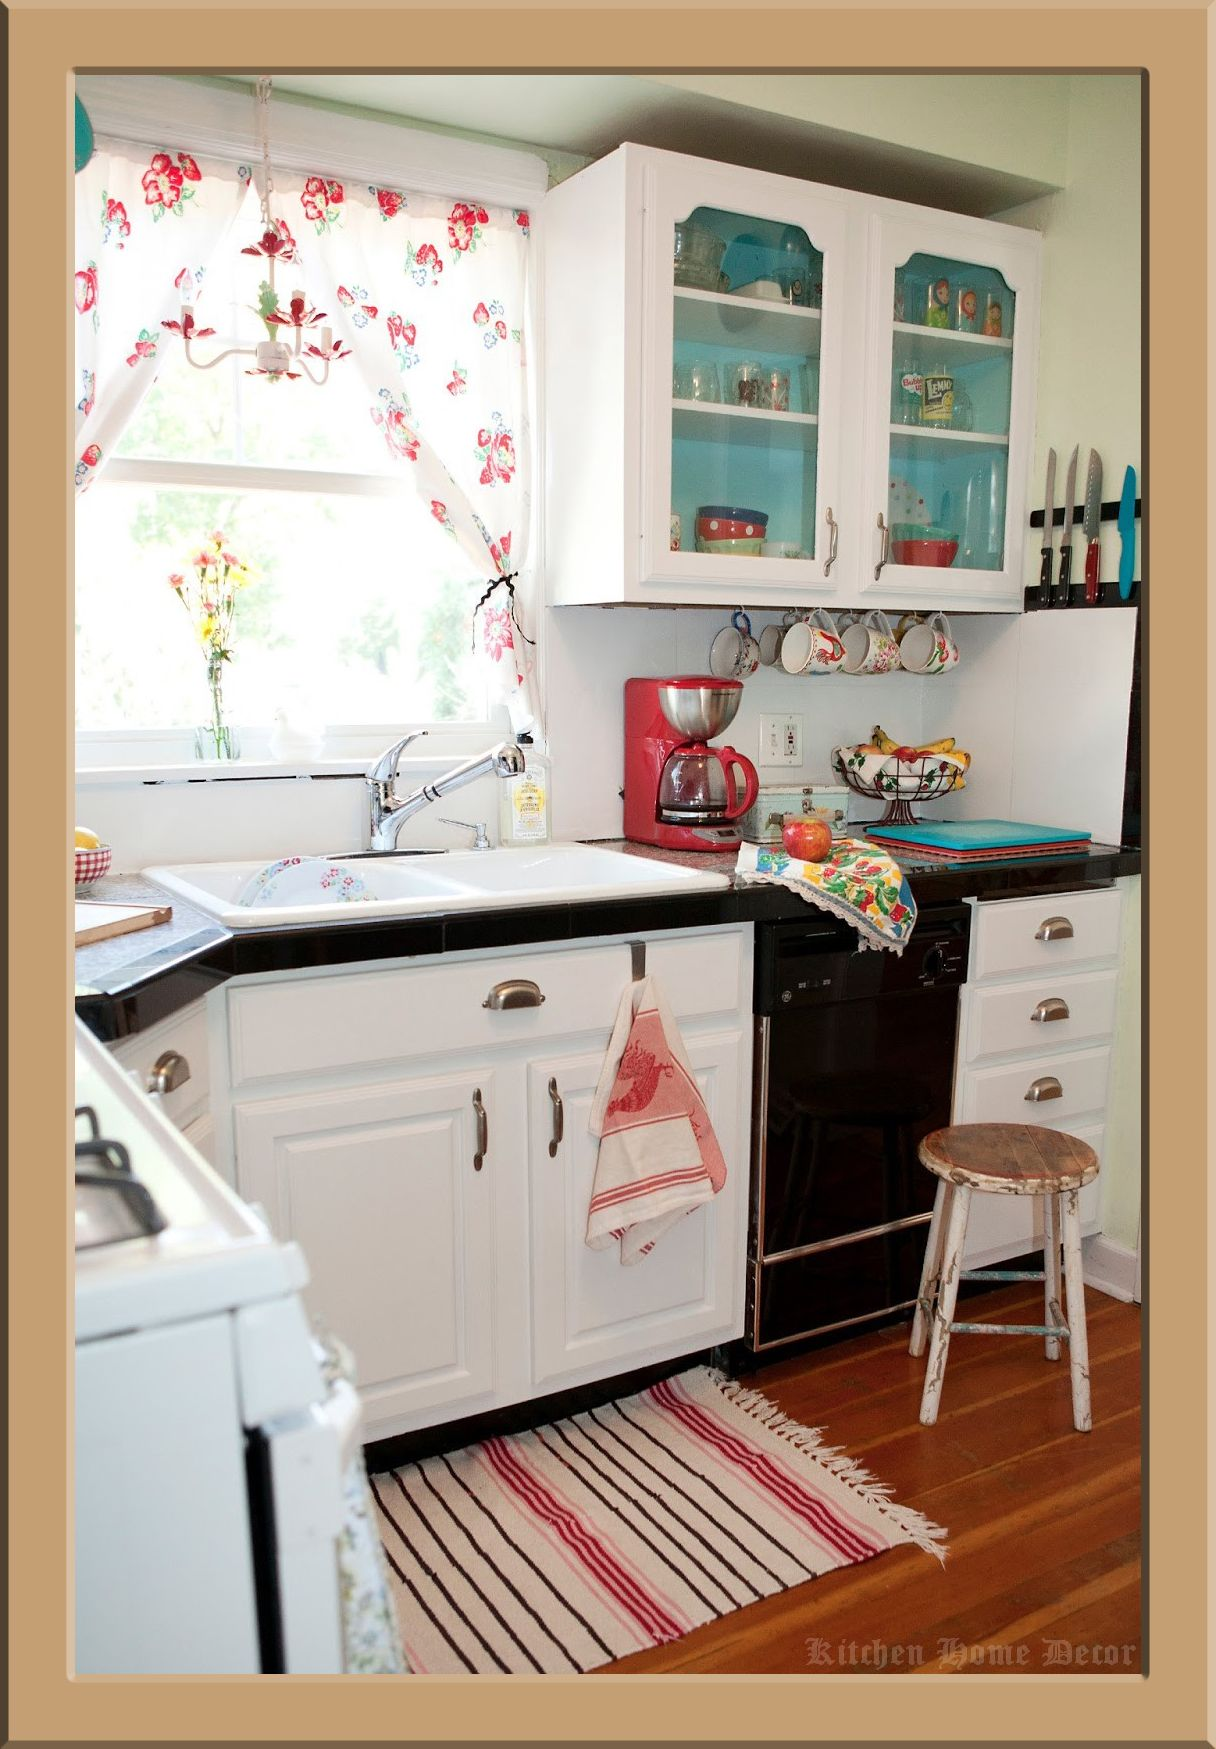 How To Buy A Kitchen Decor On A Shoestring Budget